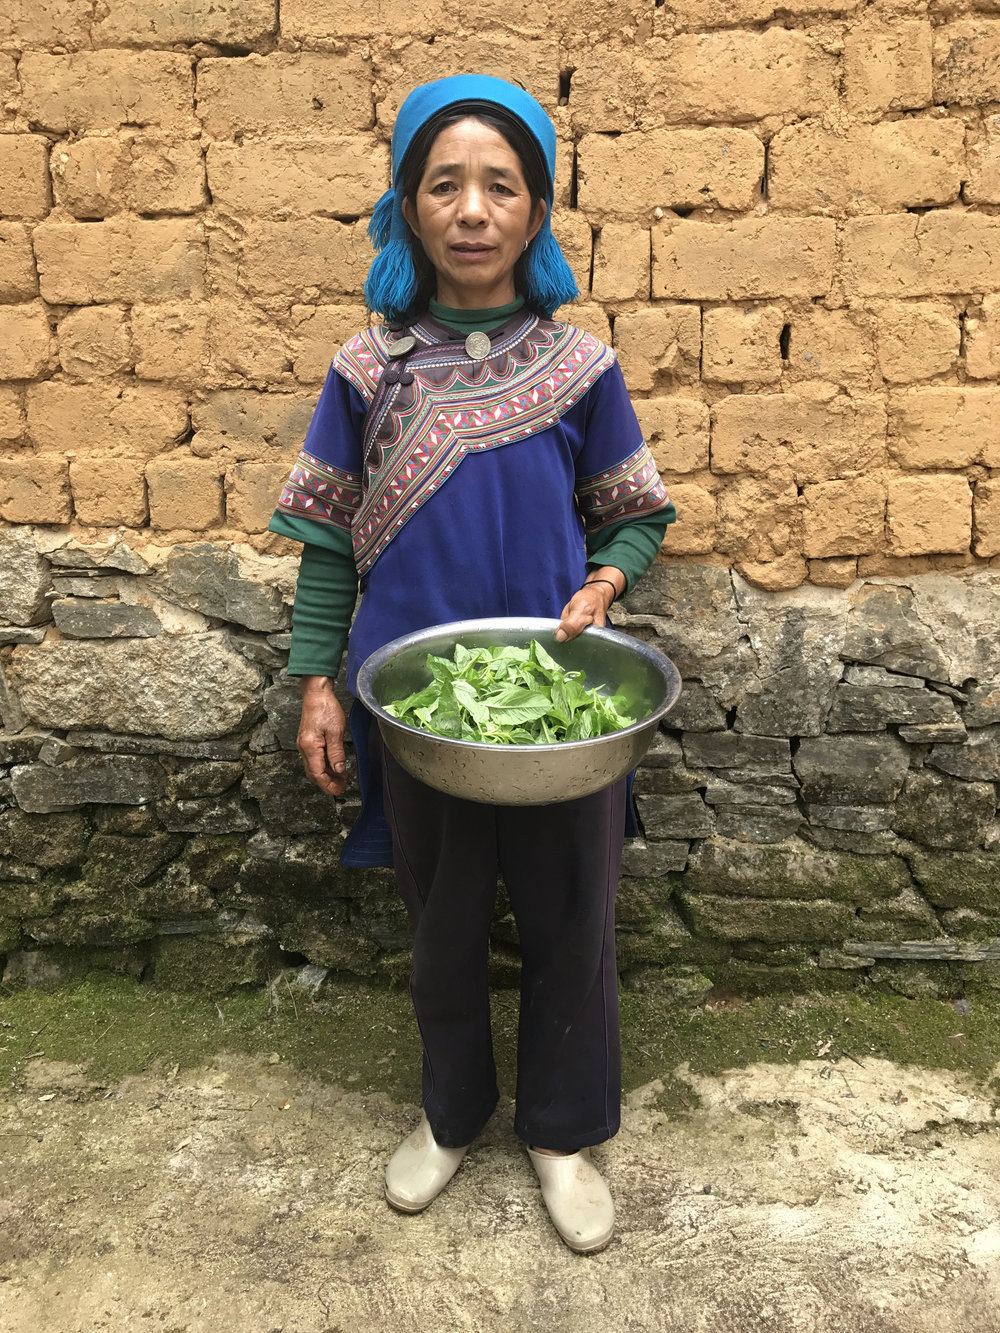 Hani woman preparing lunch, Luomo village, 2017.